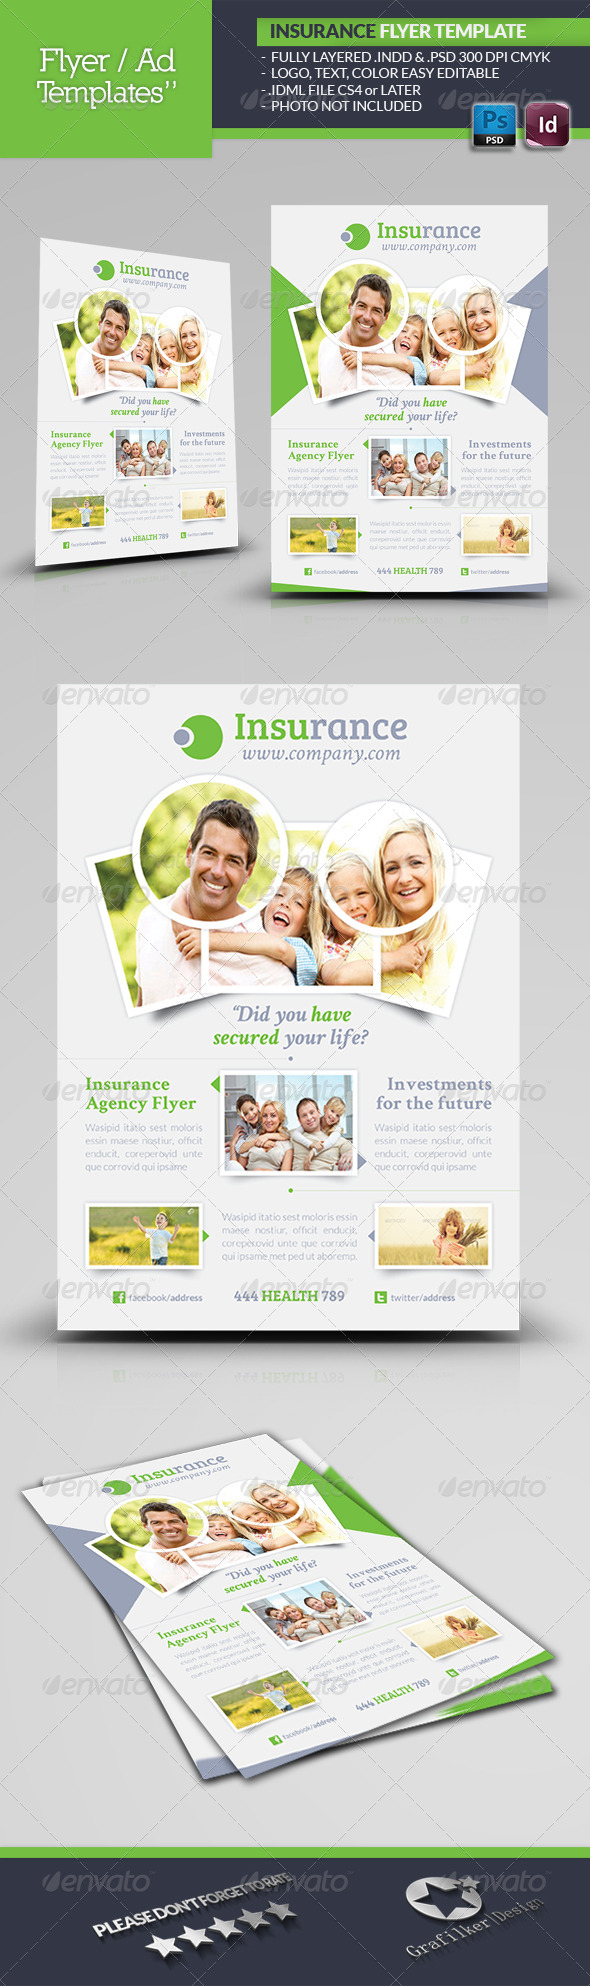 Insurance Agency Flyer Template By Grafilker GraphicRiver - Insurance brochure template